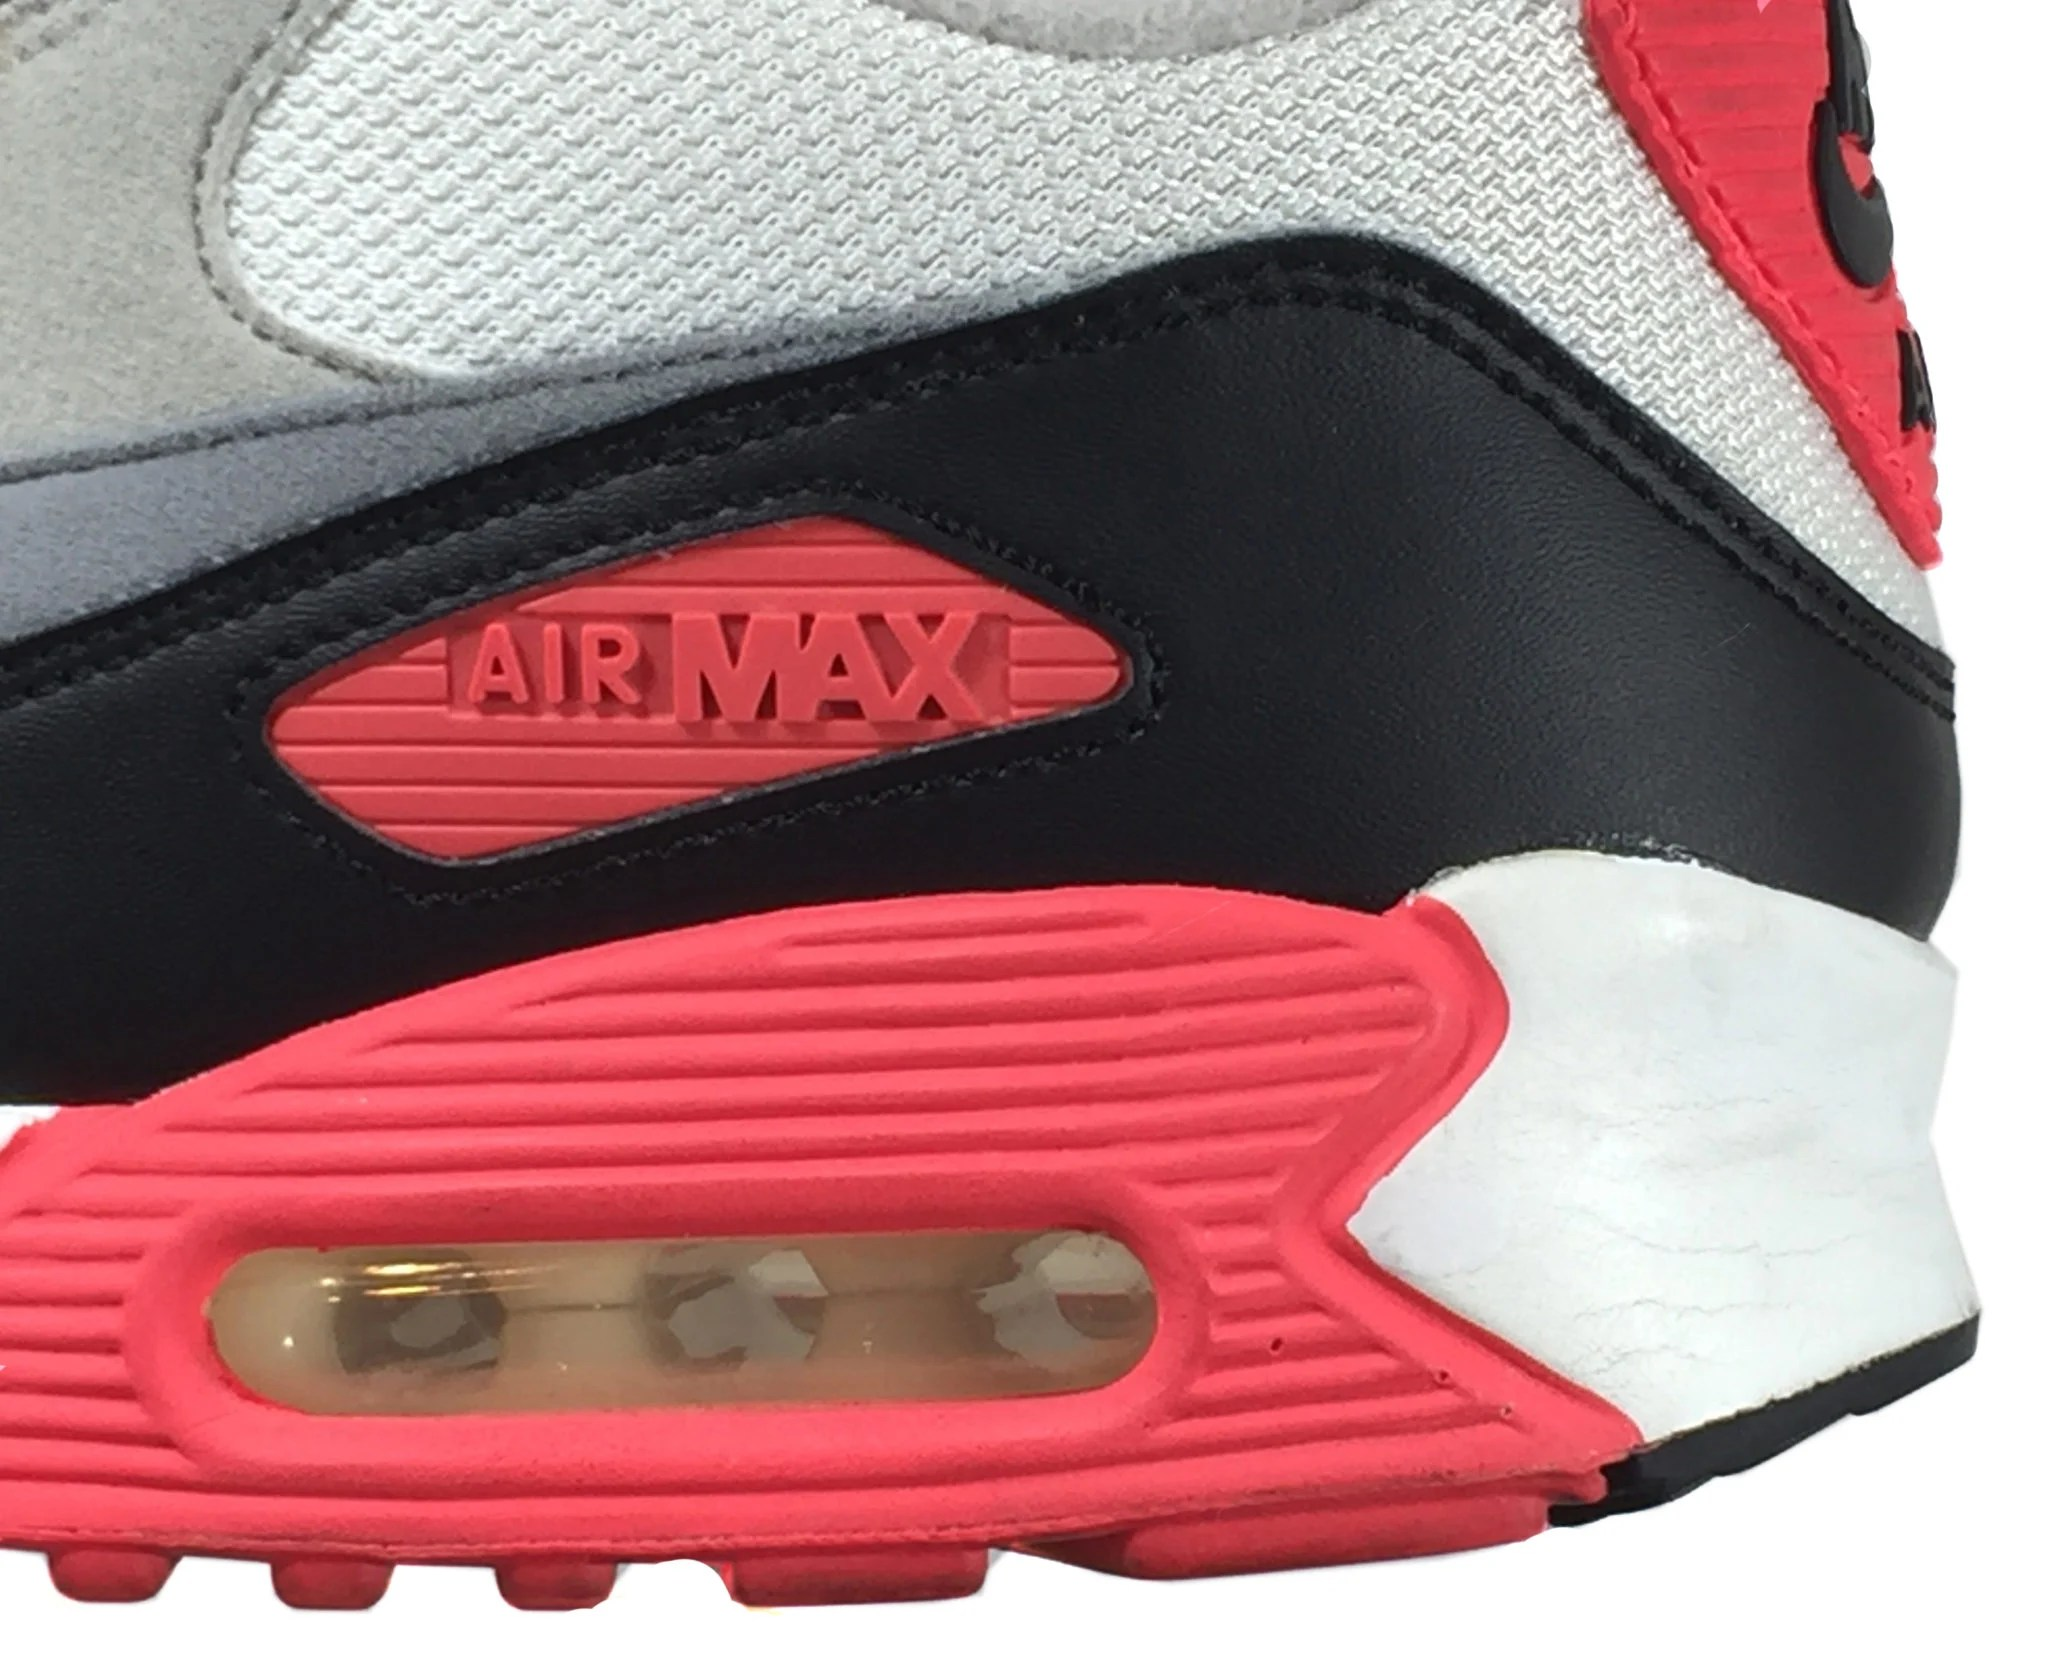 Nike Air Max 90 Counterfeit vs. Real - Watch Out!